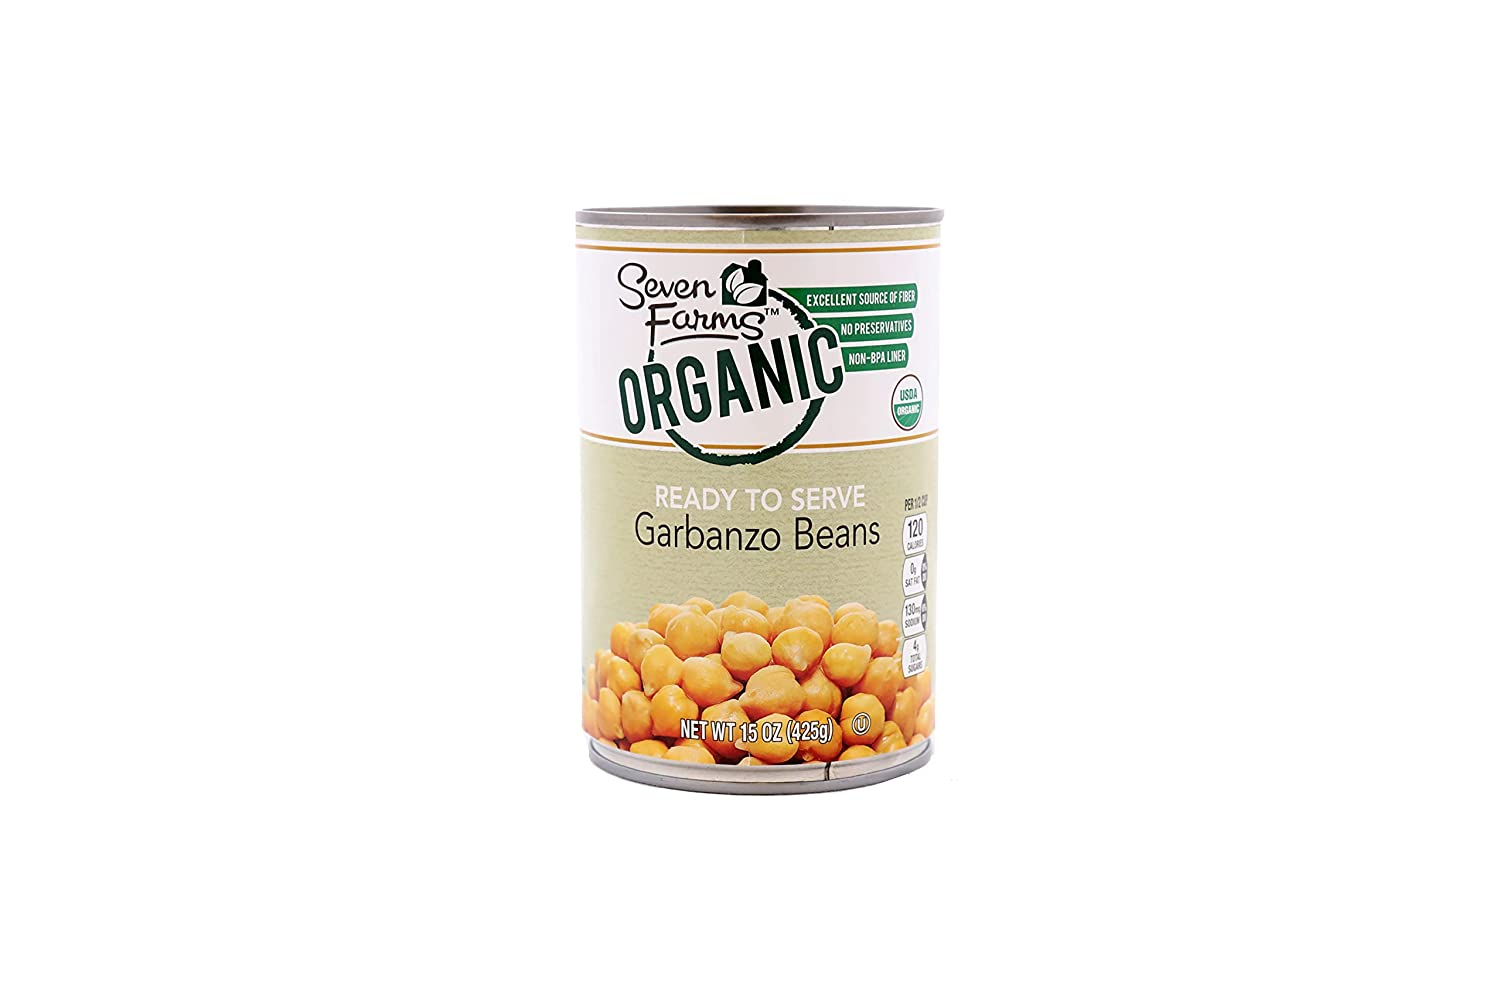 Seven Farms Cheap All stores are sold SALE Start Organic Garbanzo Beans Veg Chickpeas Bulk Canned -